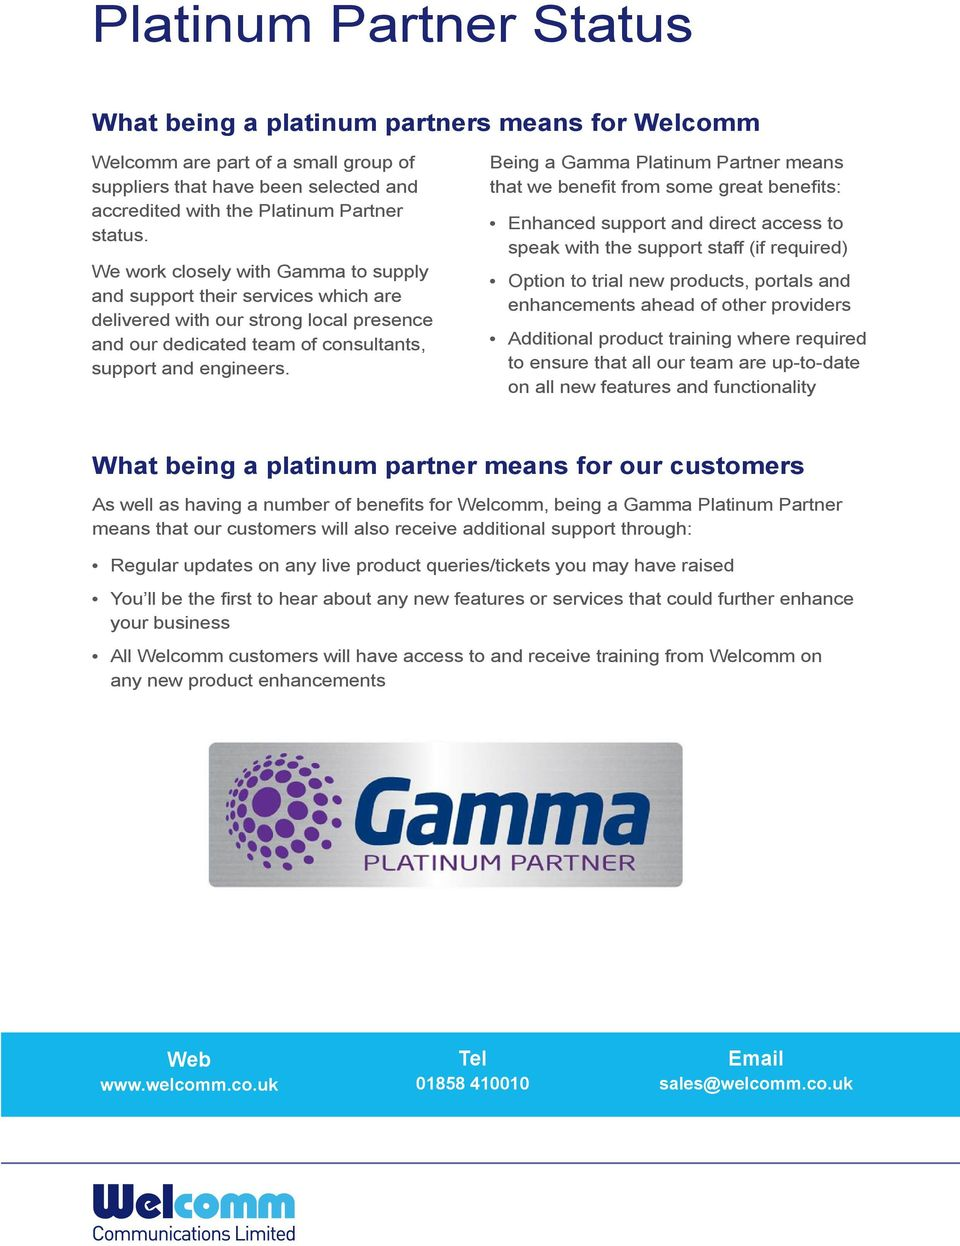 Being a Gamma Platinum Partner means that we benefit from some great benefits: Enhanced support and direct access to speak with the support staff (if required) Option to trial new products, portals